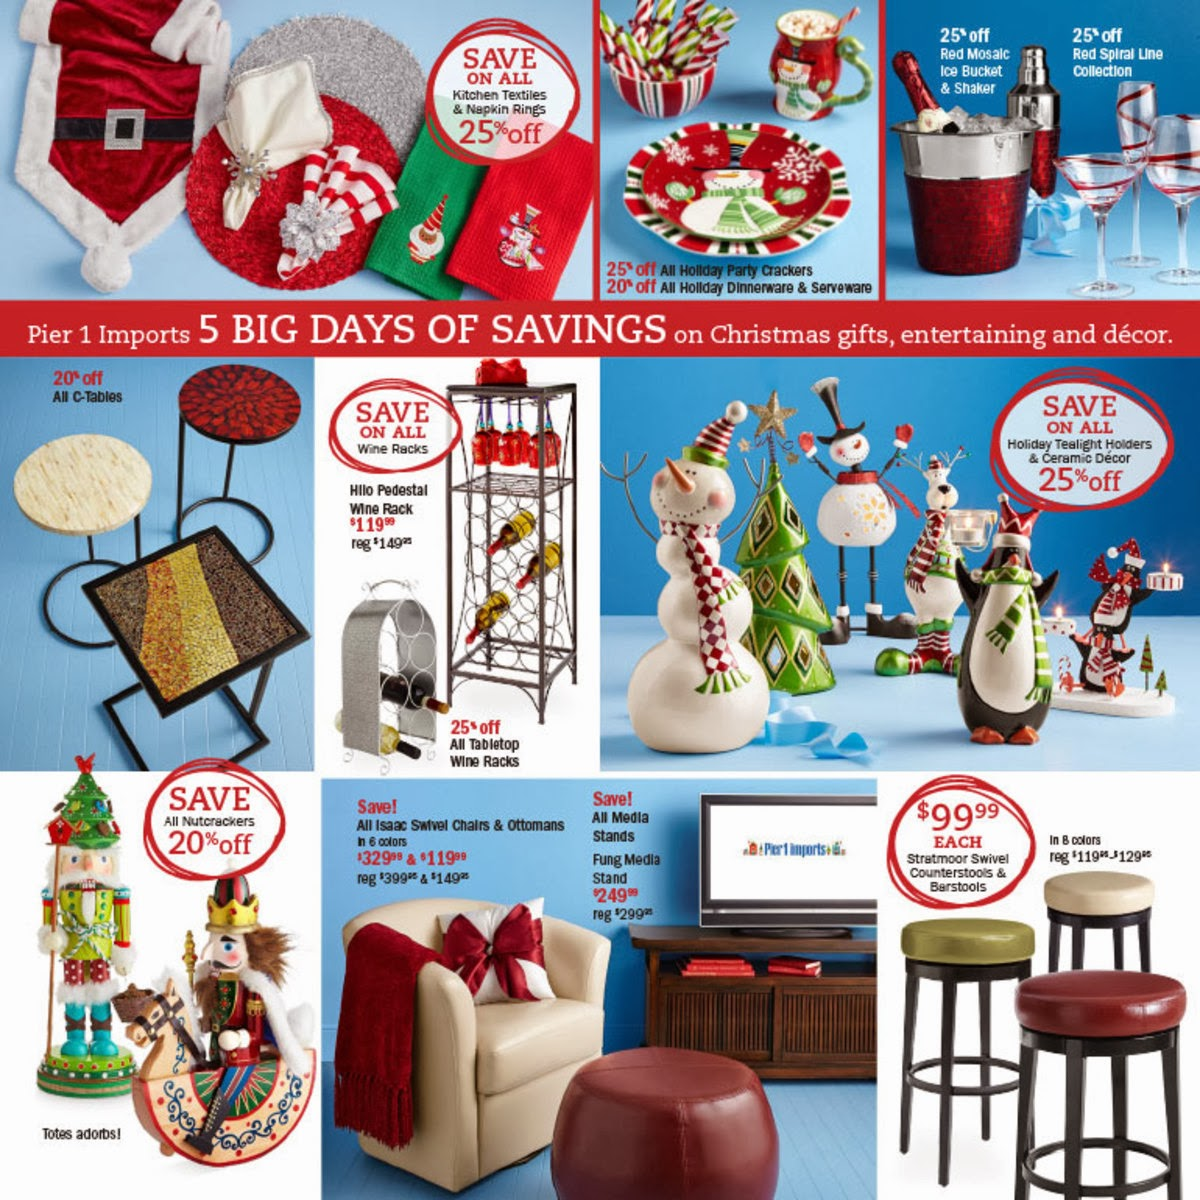 Black Friday Ads 2013 Pier 1 Imports Black Friday Ad 2013